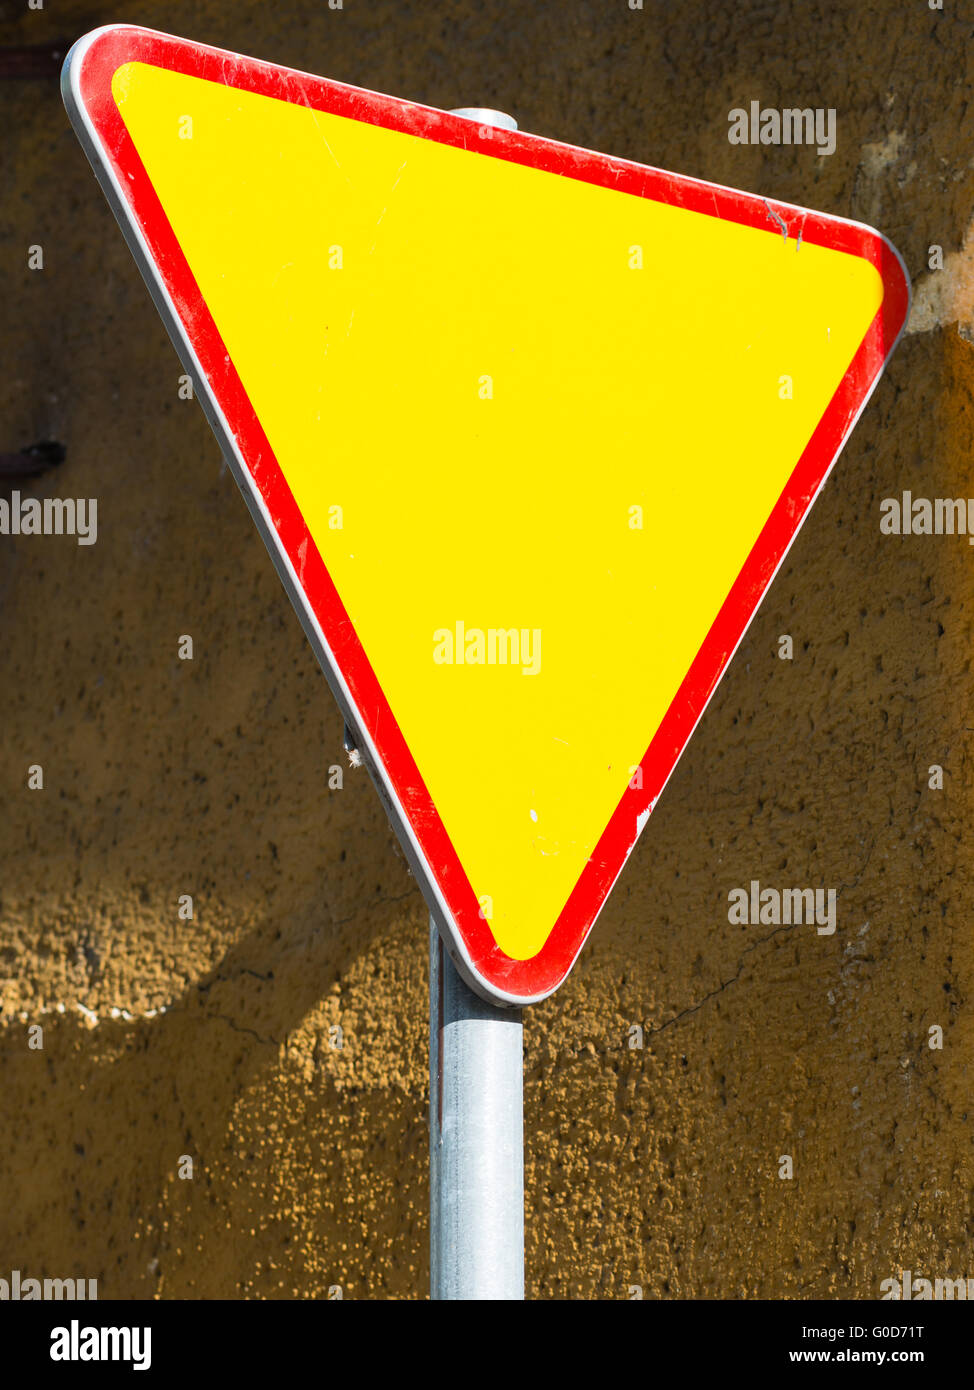 Give way sign - yield sign - Stock Image